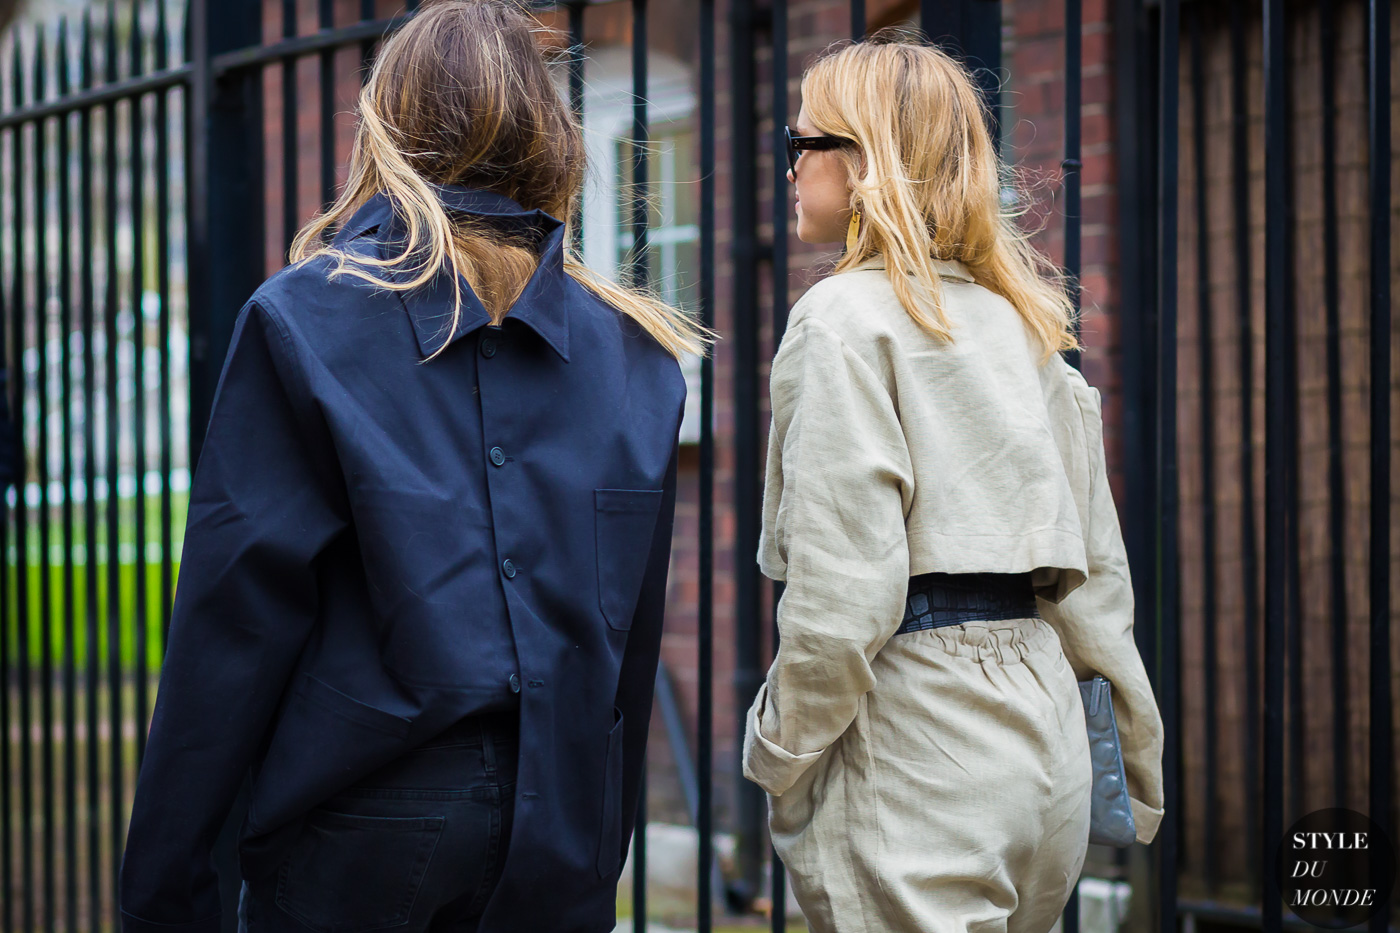 Natalie Hartley and Pernille Teisbaek Street Style Street Fashion Streetsnaps by STYLEDUMONDE Street Style Fashion Photography